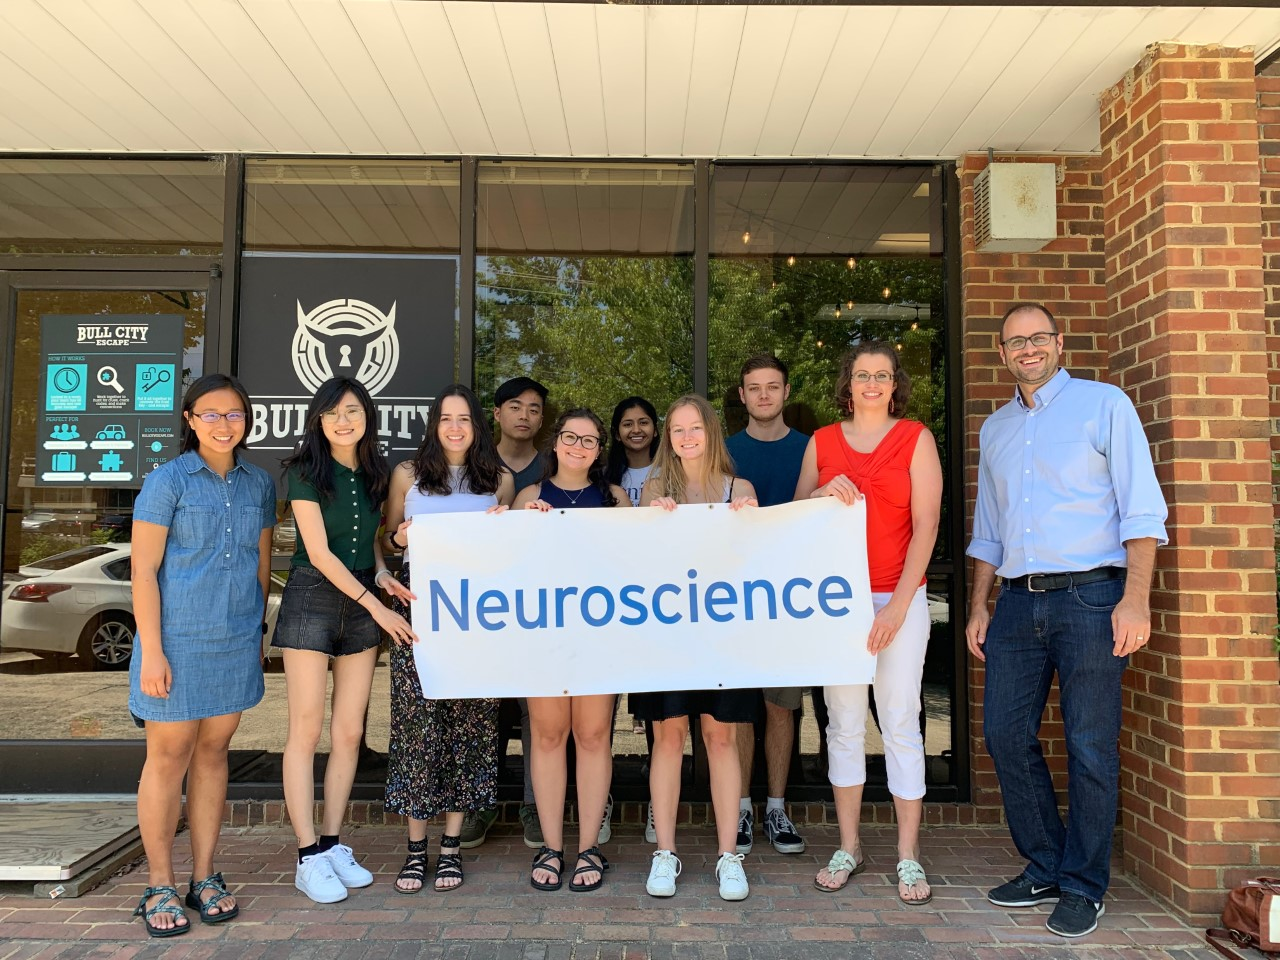 Not the usual team building activity: Students in Duke's 8-week Summer Neuroscience Program got to know each other while locked in a room.